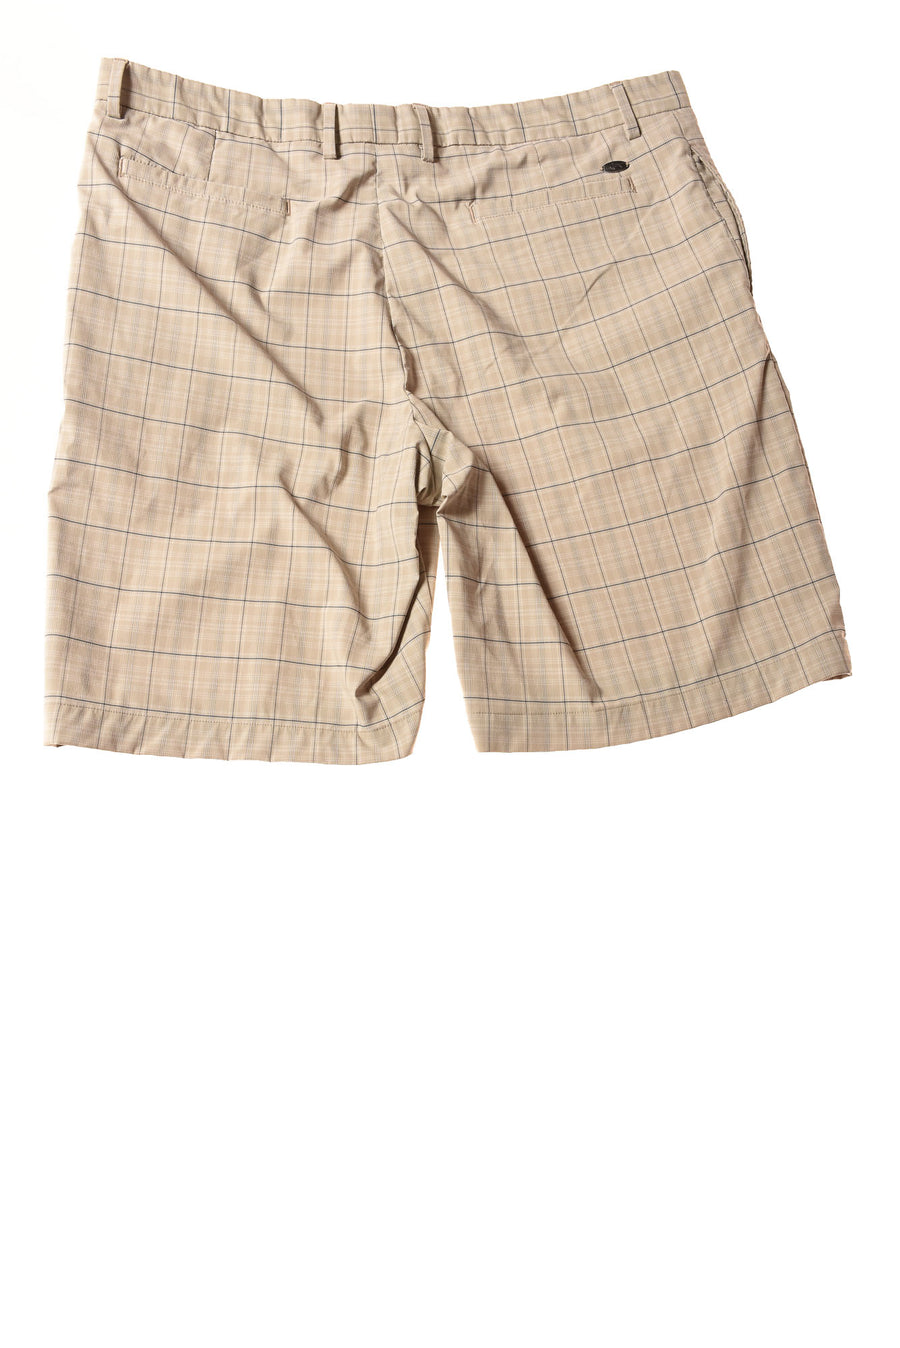 Men's Shorts By Greg Norman